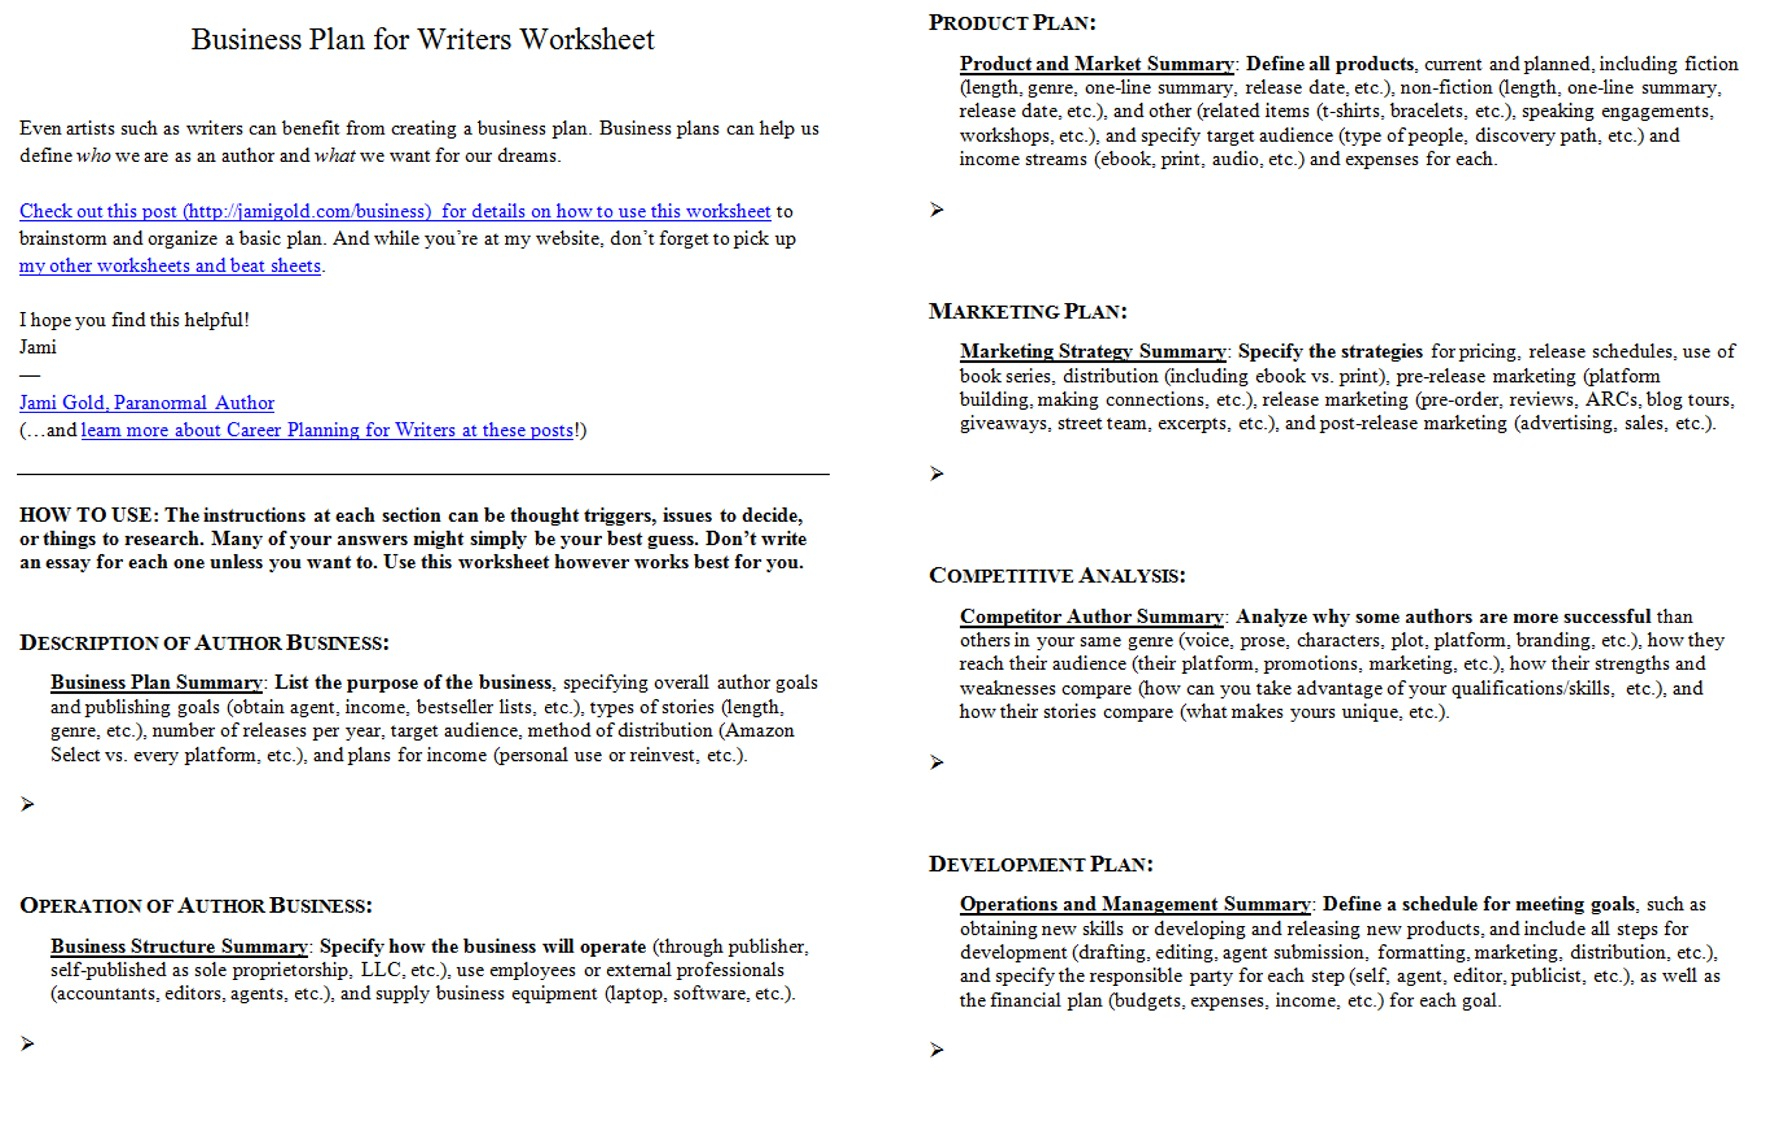 Weirdmailus  Personable Worksheets For Writers  Jami Gold Paranormal Author With Glamorous Screen Shot Of Both Pages Of The Business Plan For Writers Worksheet With Astonishing Counting By S Worksheet Also Third Grade Math Worksheet In Addition Writing Worksheets For Th Grade And Hazard Analysis Worksheet As Well As Rational Numbers Worksheets Additionally Tener Expressions Worksheet From Jamigoldcom With Weirdmailus  Glamorous Worksheets For Writers  Jami Gold Paranormal Author With Astonishing Screen Shot Of Both Pages Of The Business Plan For Writers Worksheet And Personable Counting By S Worksheet Also Third Grade Math Worksheet In Addition Writing Worksheets For Th Grade From Jamigoldcom